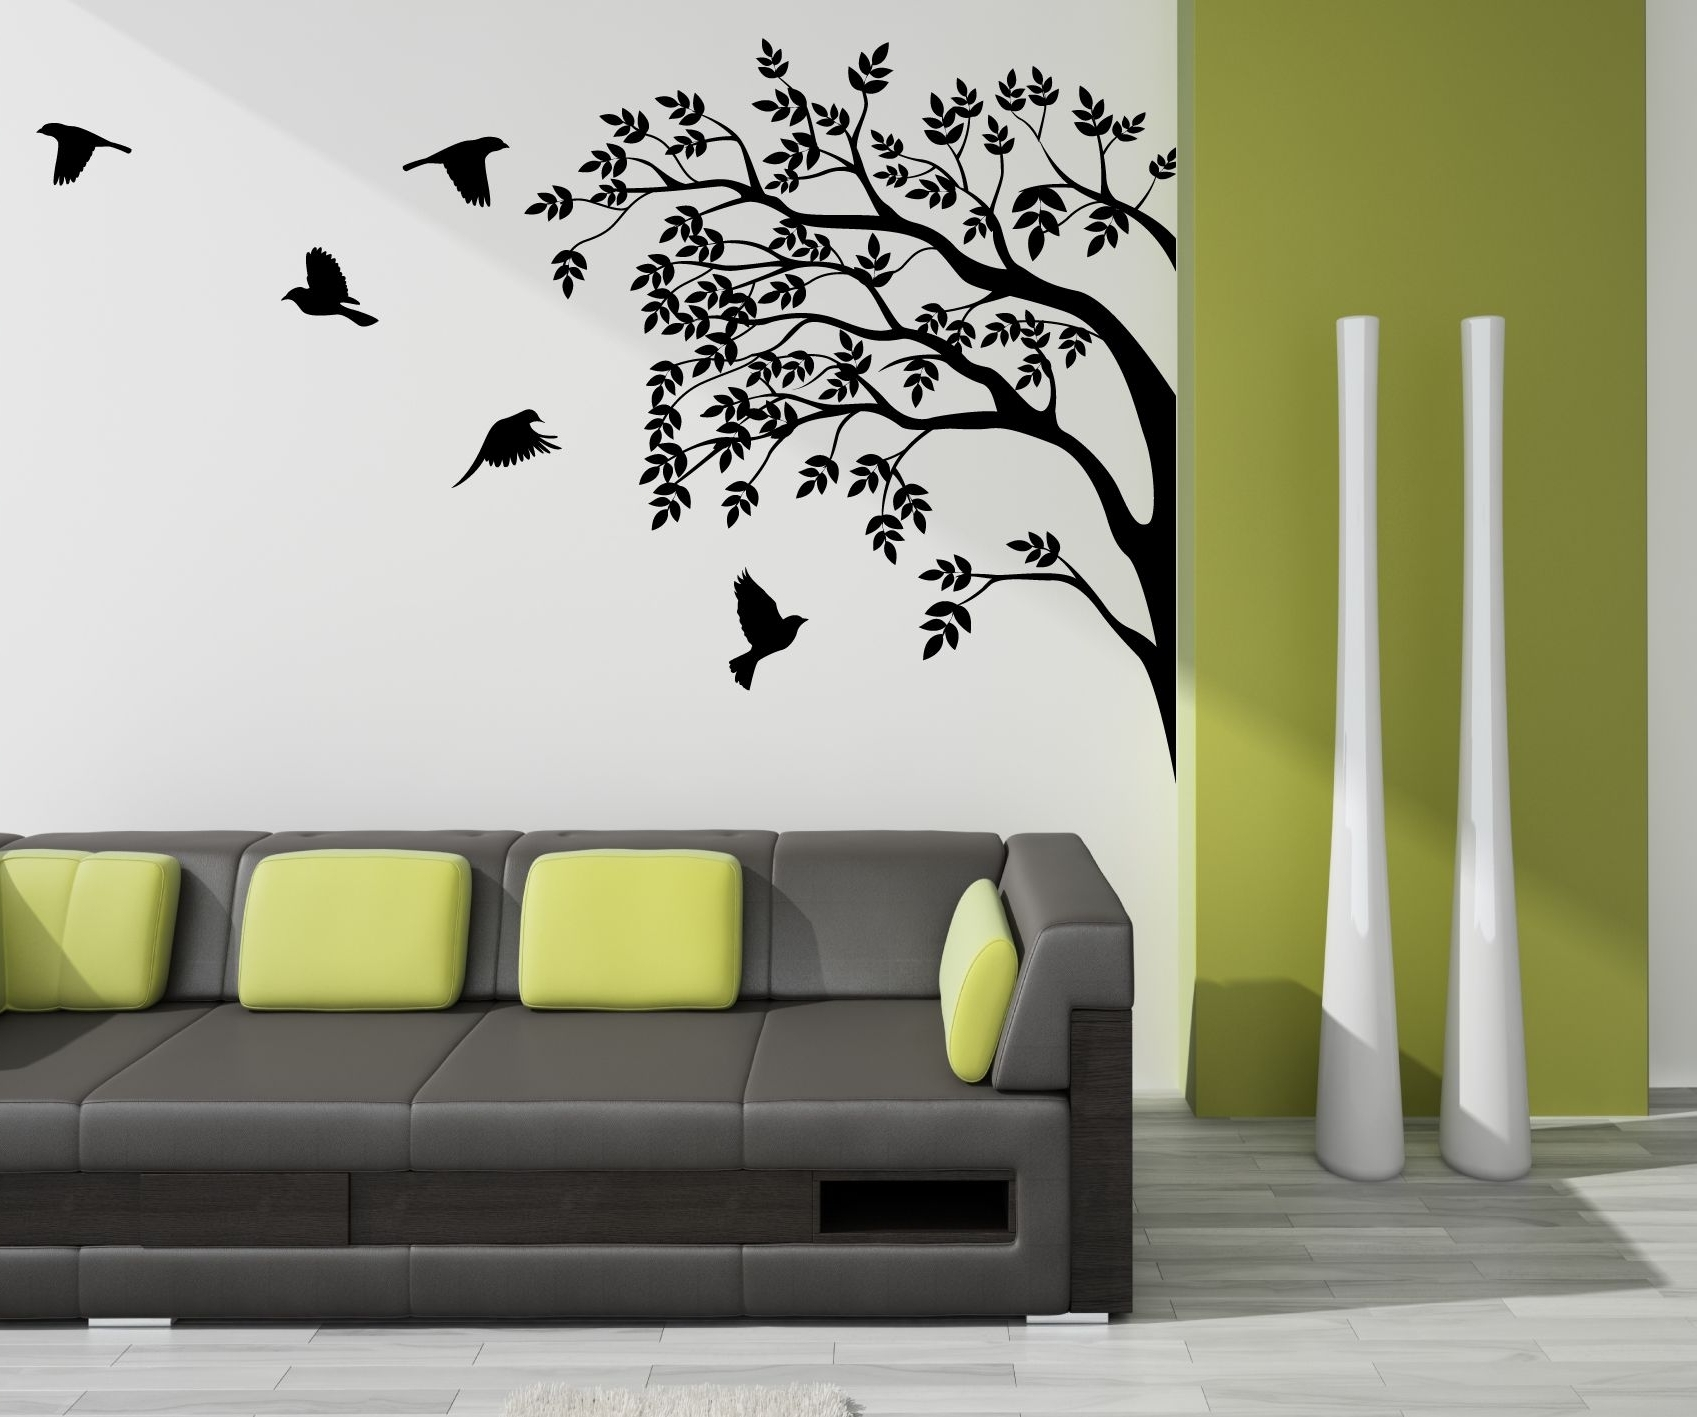 Preferred Wall Art Design Ideas: Huge Modern Vinyl Wall Art Decals Design With Regard To Modern Vinyl Wall Art (View 14 of 15)